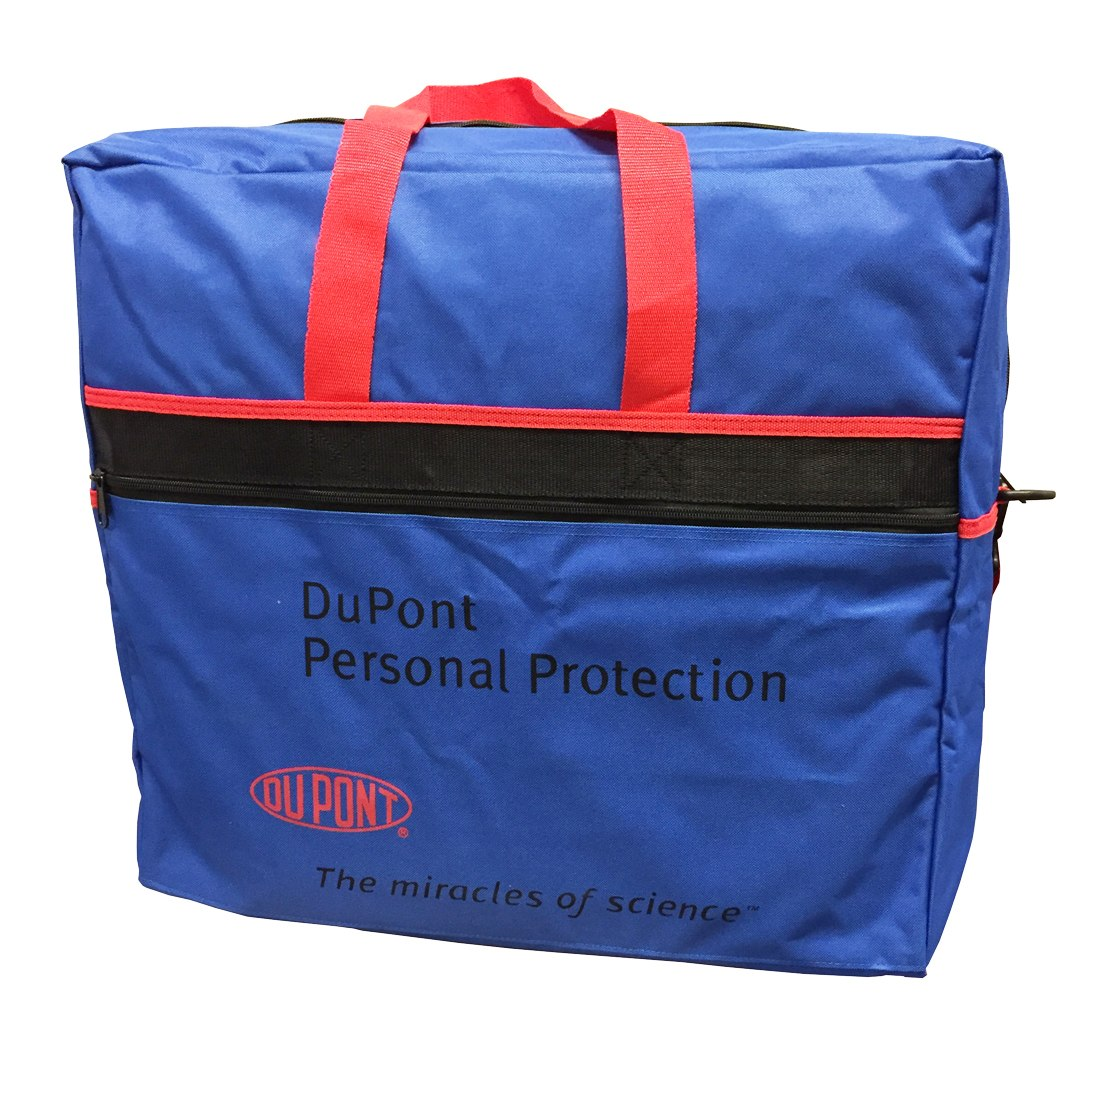 DuPont Tychem 10000 Level A Suit Storage Bag image